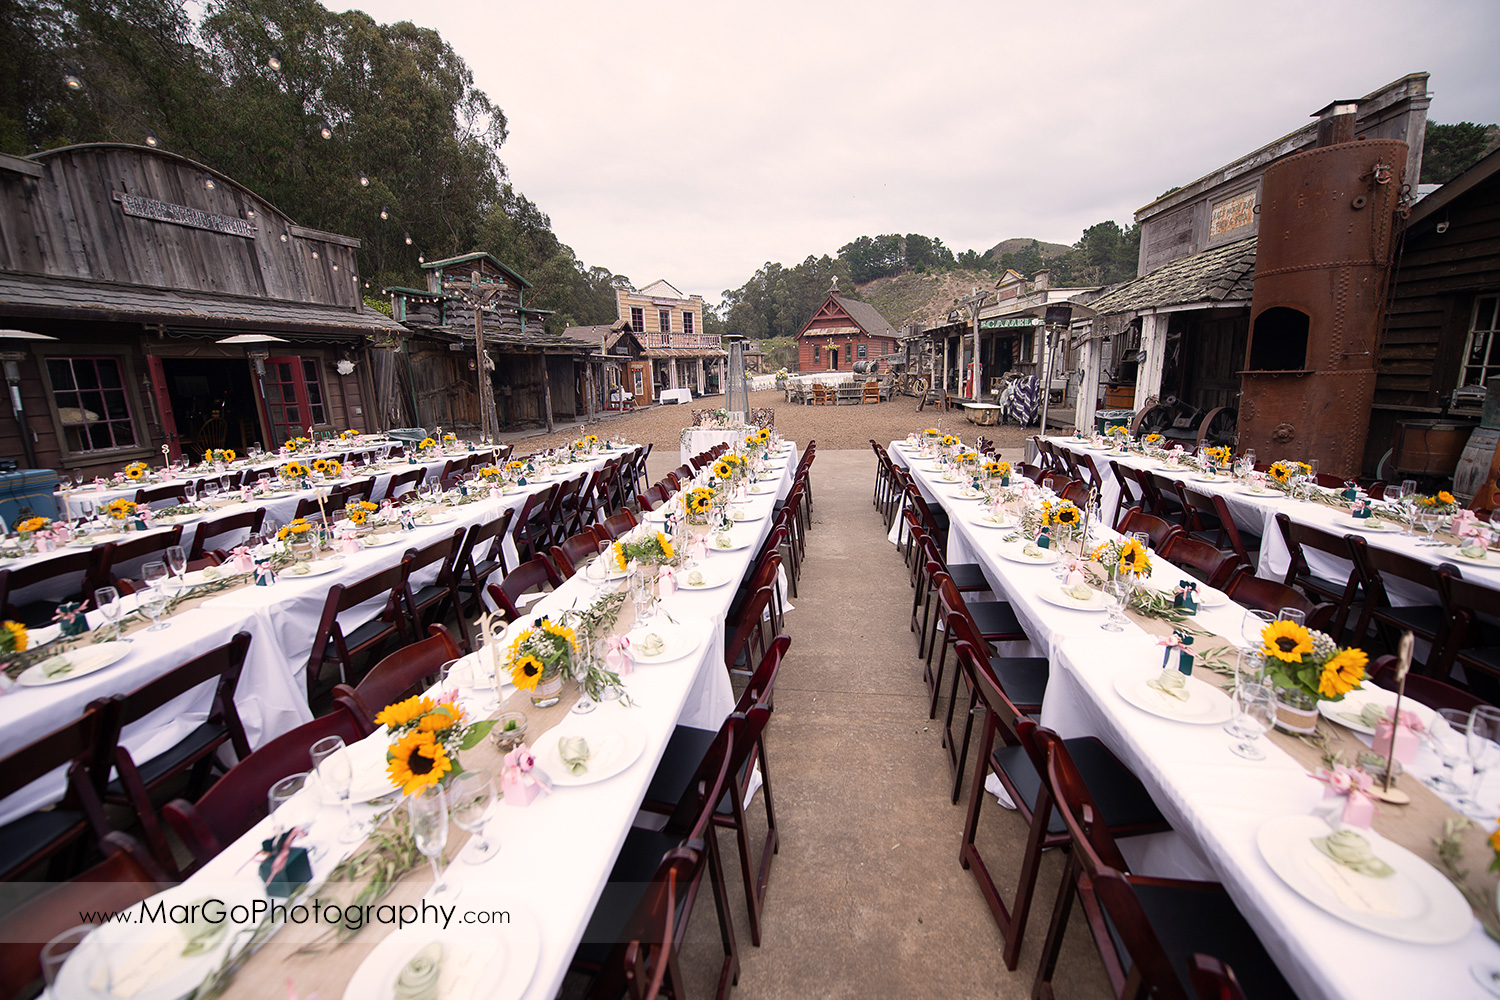 outdoor wedding reception setup with long tables decorated with yellow flowers at Long Branch Saloon & Farms in Half Moon Bay